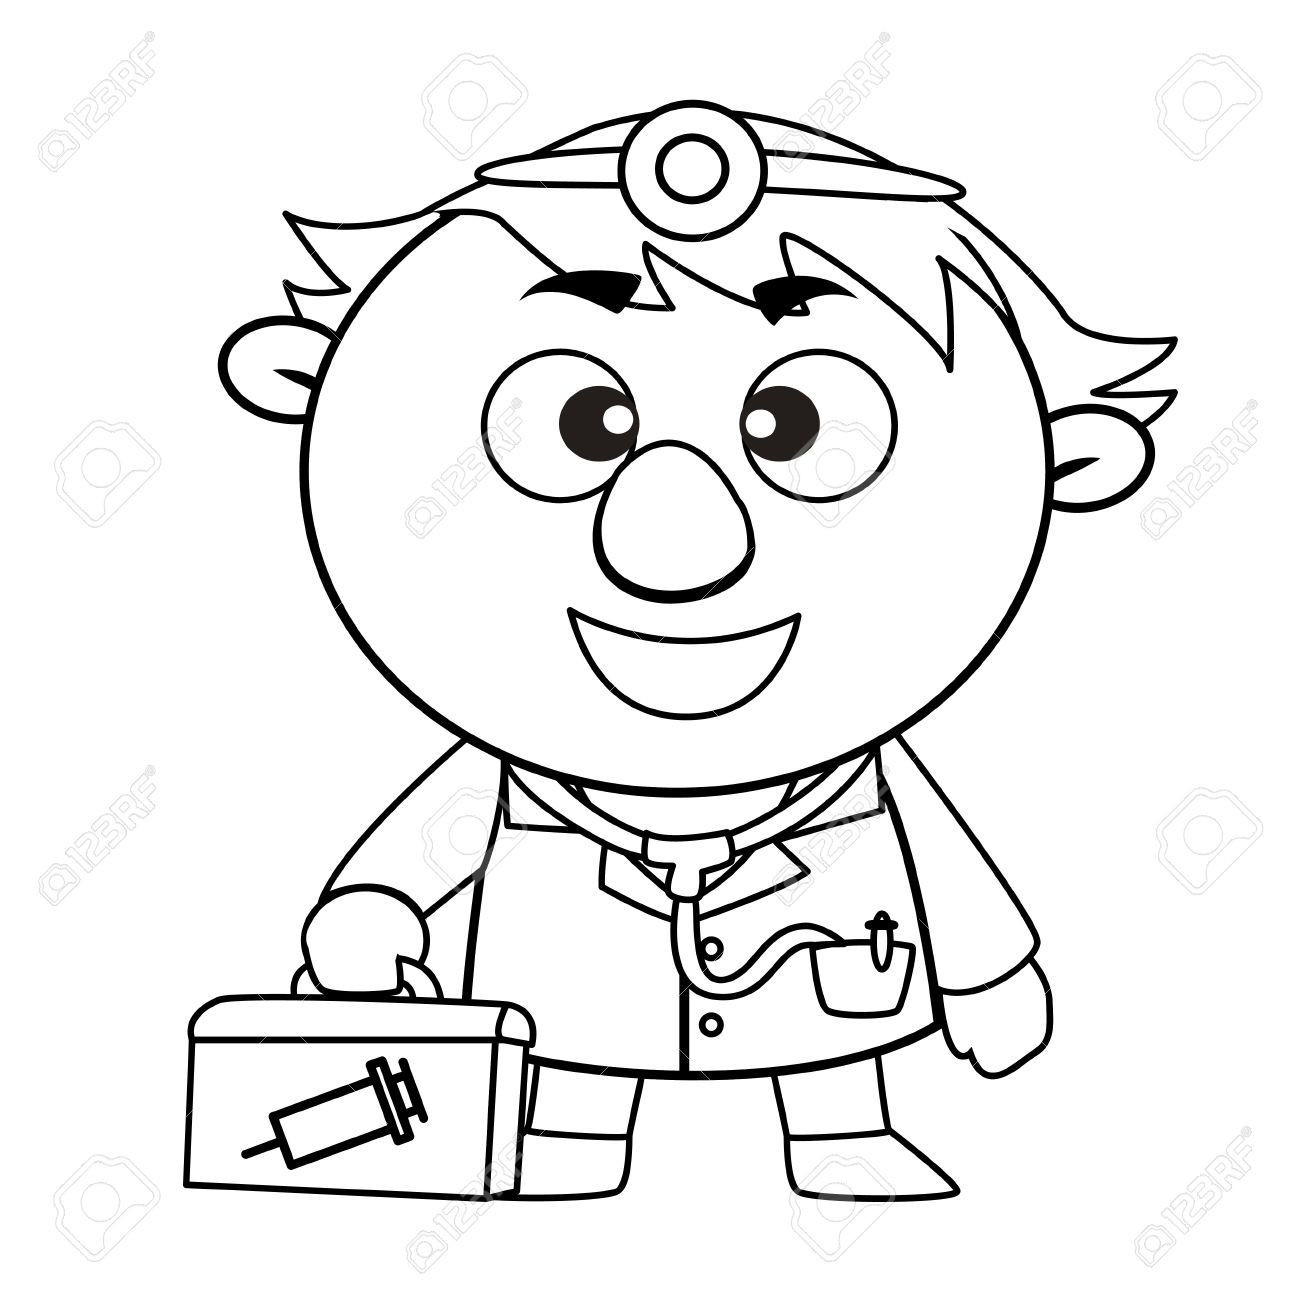 1300x1300 Black And White Coloring Page Outline Of A Doctor Royalty Free